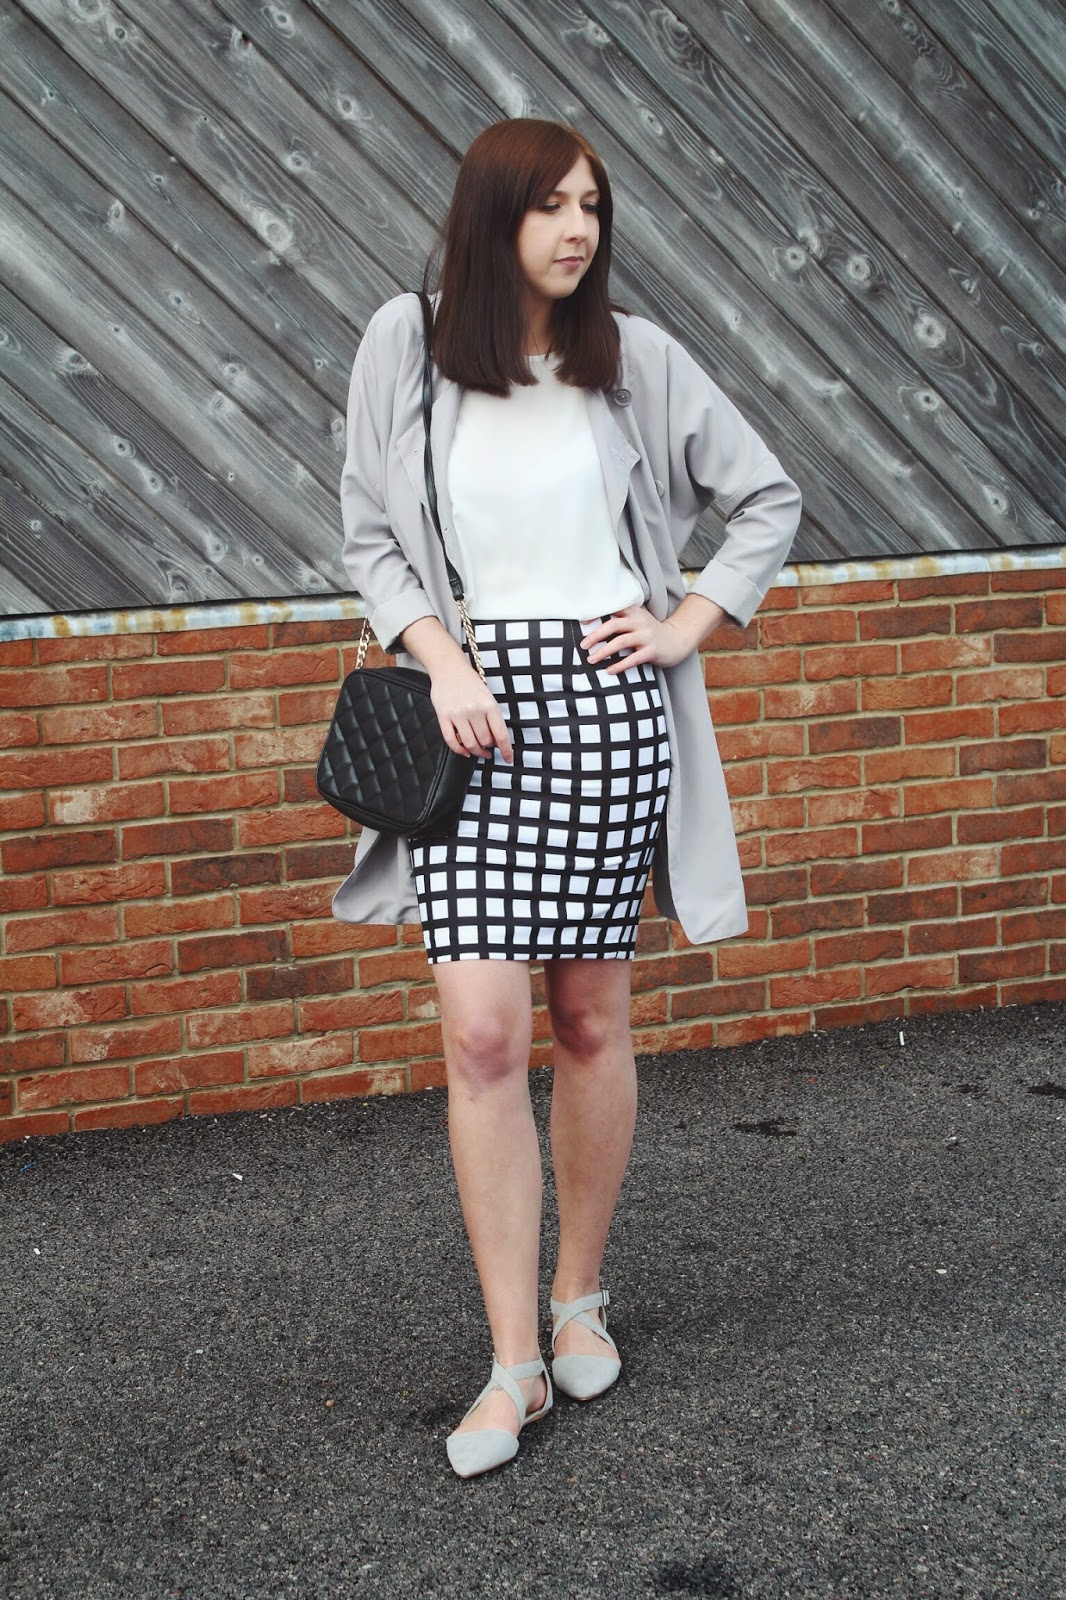 asseenonme, wiw, whatimwearing, halcyon velvet, nuerclothing, primark, asos, lotd, lookoftheday, ootd, outfitoftheday, blackandwhite, nocolouroutfit, fashionbloggers, fbloggers, fashion, fashionblogger, fblogger